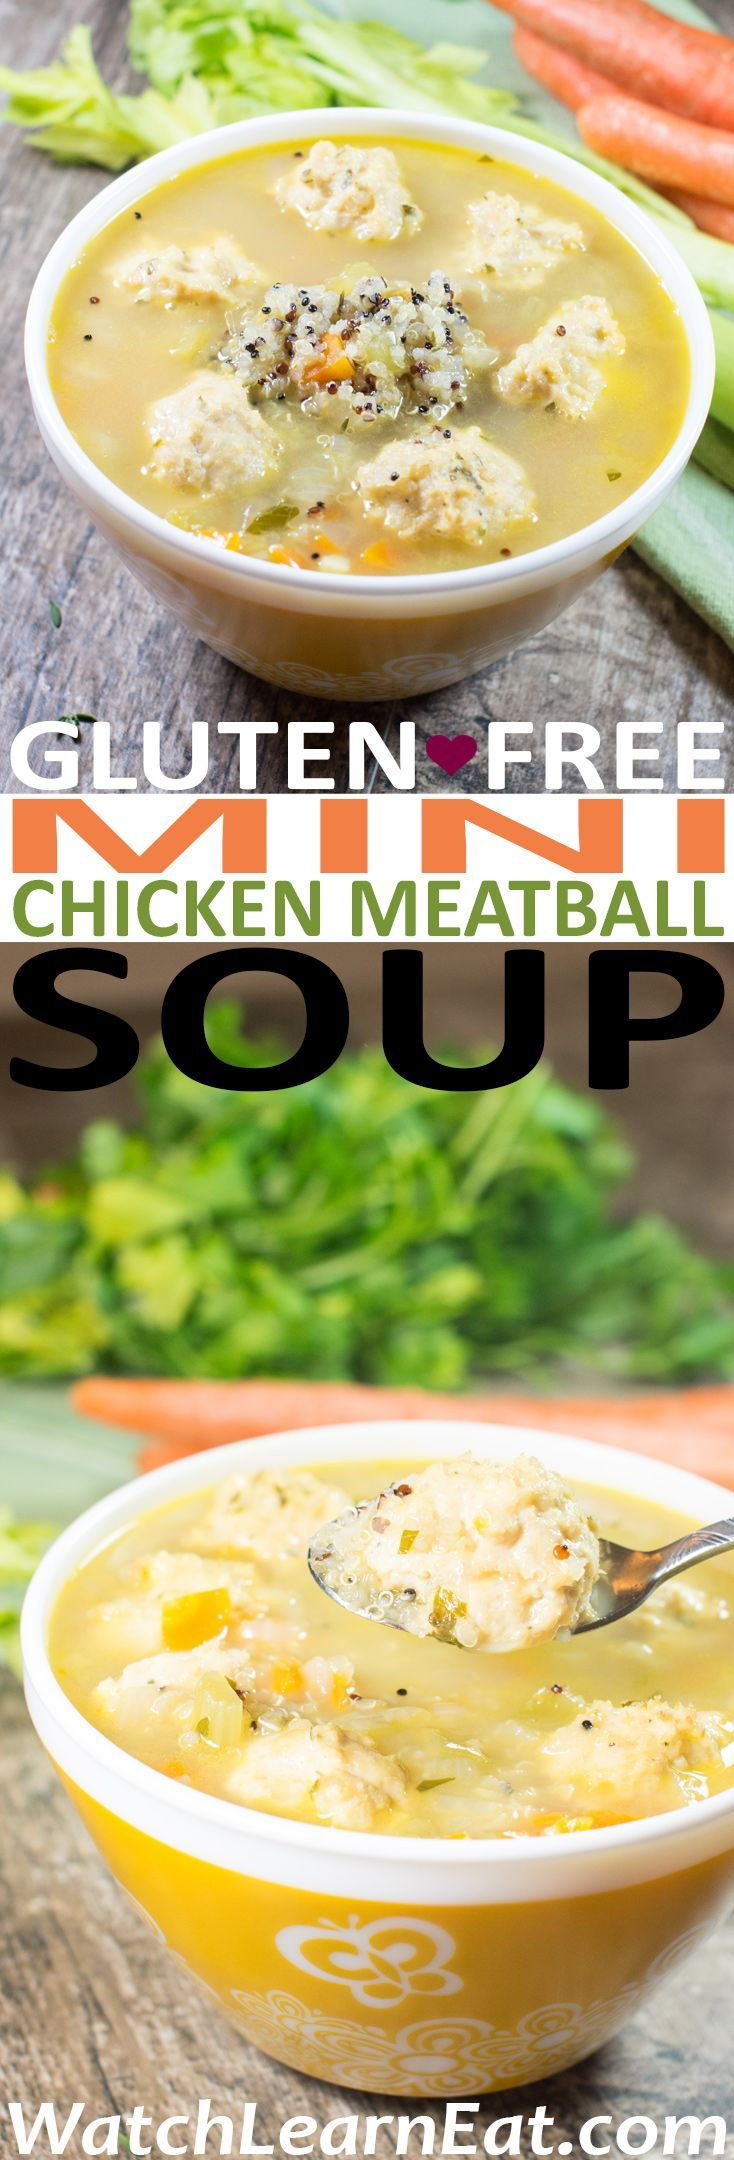 Chicken Soup meets Italian Wedding and gets a gluten-free makeover in this Mini Chicken Meatball Soup.